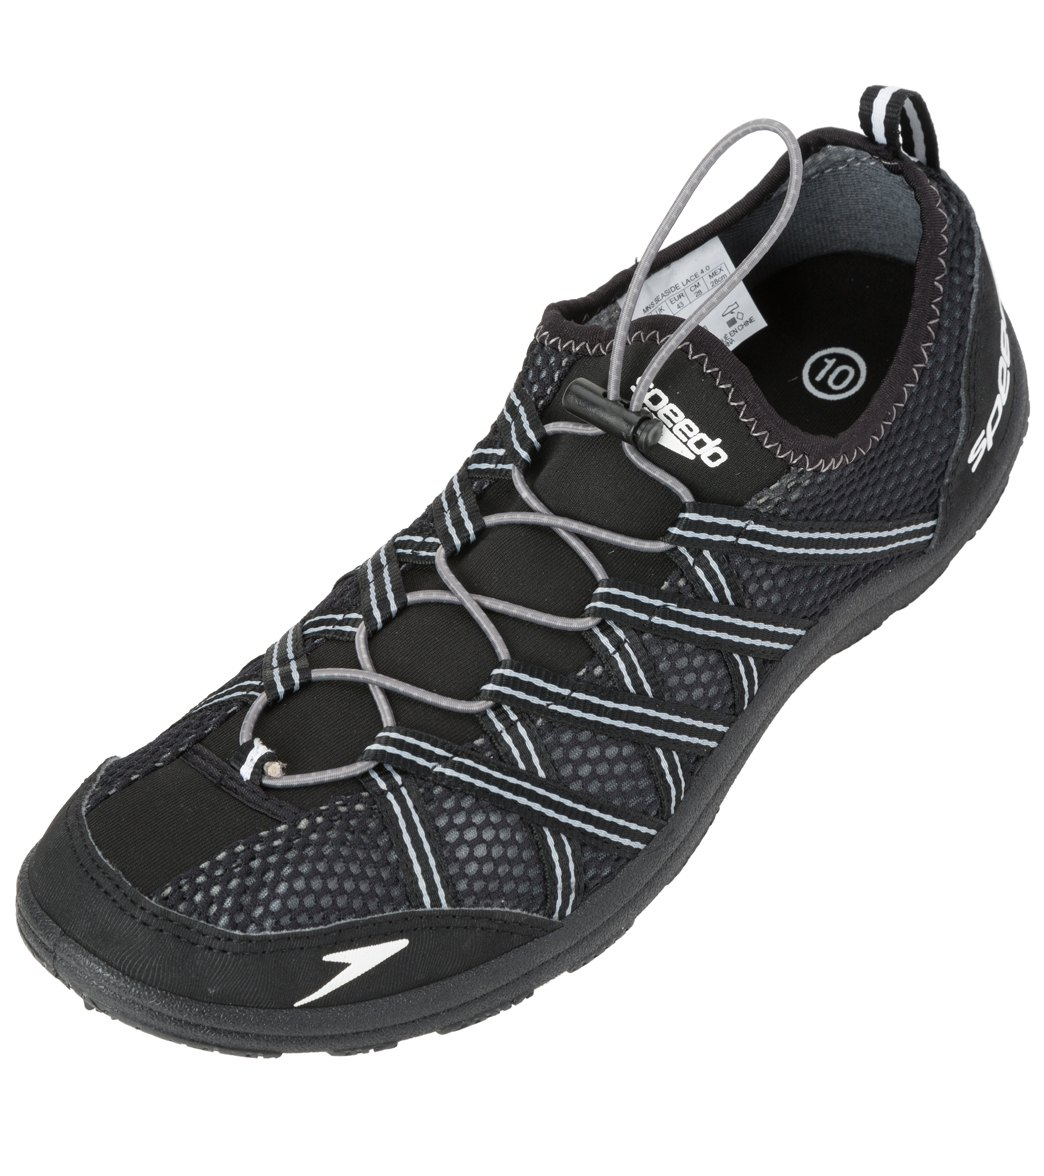 e3557486aea5 Speedo Men s Seaside Lace 4.0 Water Shoes at SwimOutlet.com